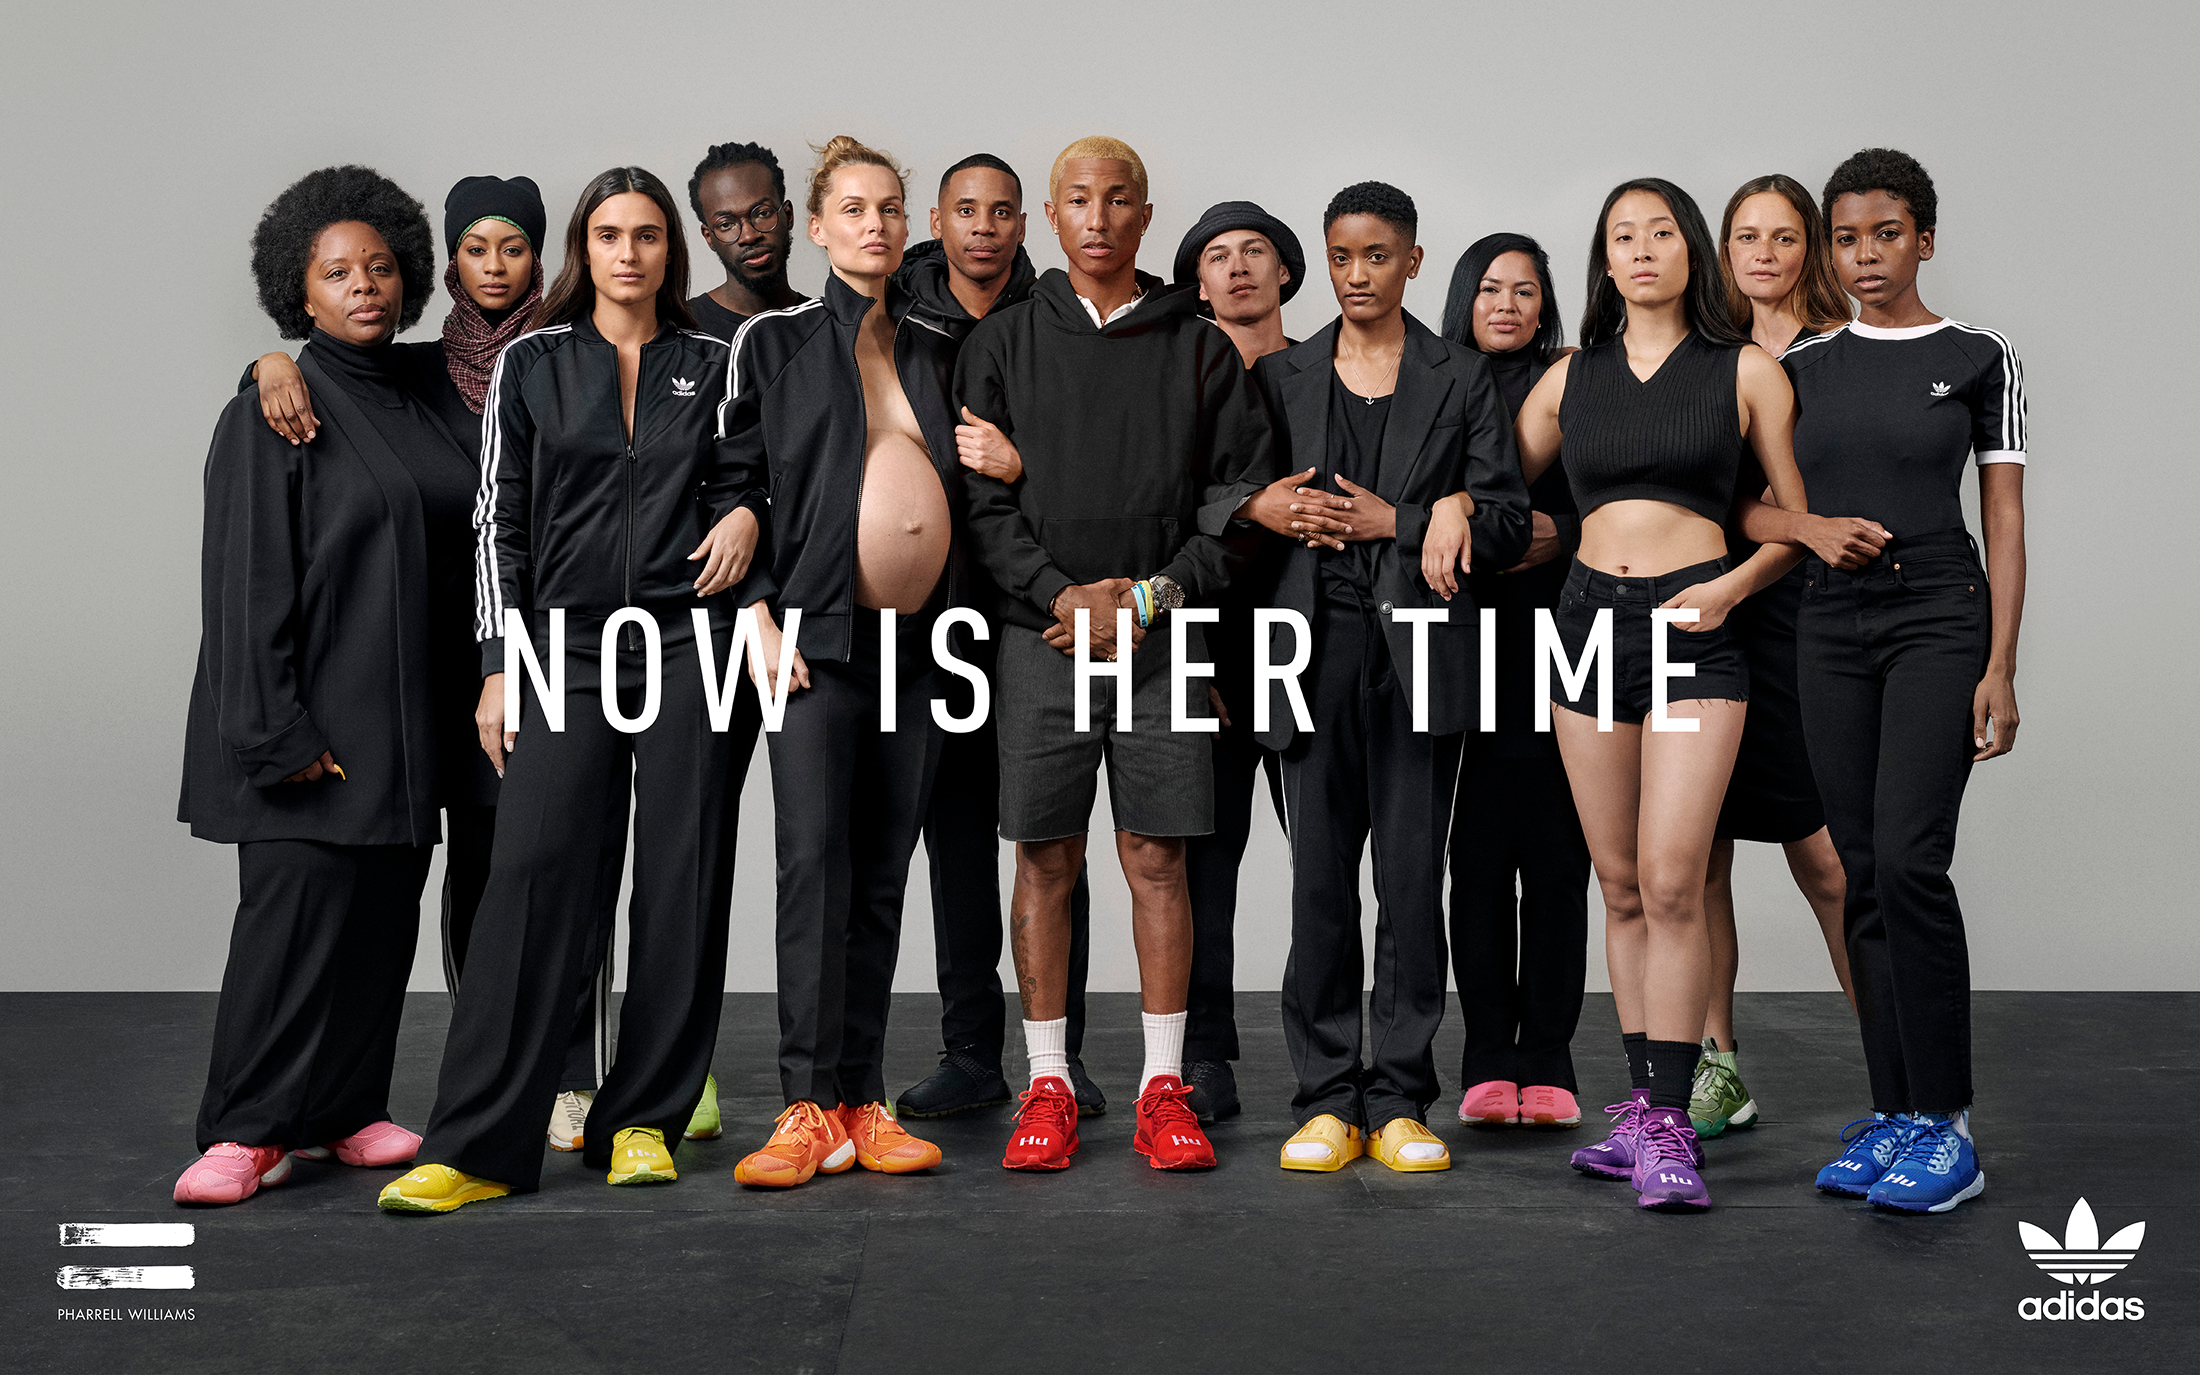 Adidas + Pharrell Williams Now Is Her Time 2019 Campaign by Lloyd & Co